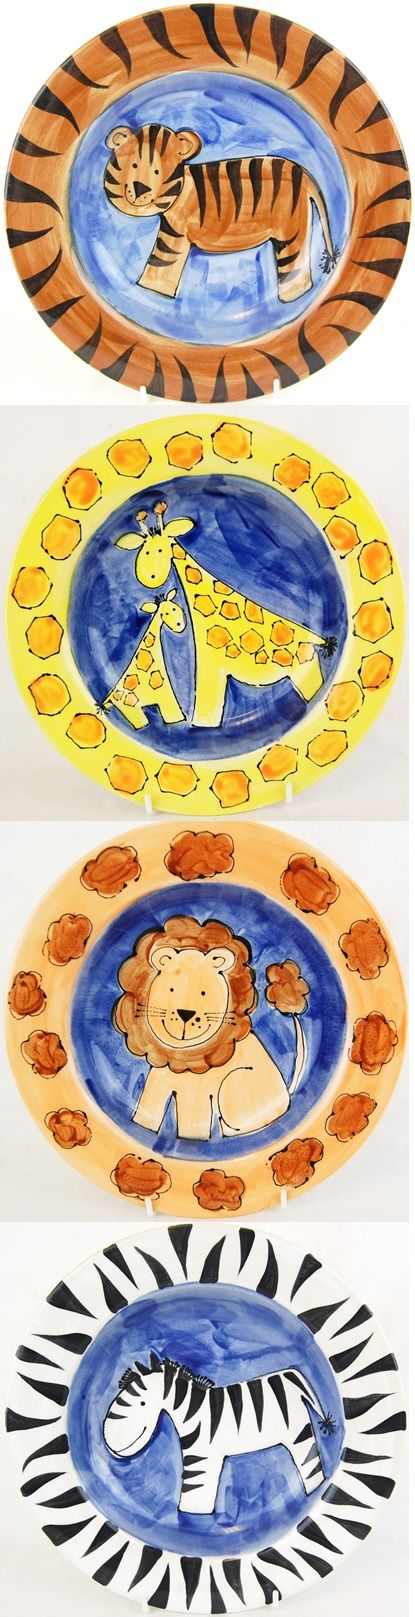 Ceramic paint a plate.  Jungle theme set DIY decorated, hand-painted PYOP.  Tiger, Giraffe, Lion and Zebra all painted on a bisque pottery rimmed plate.